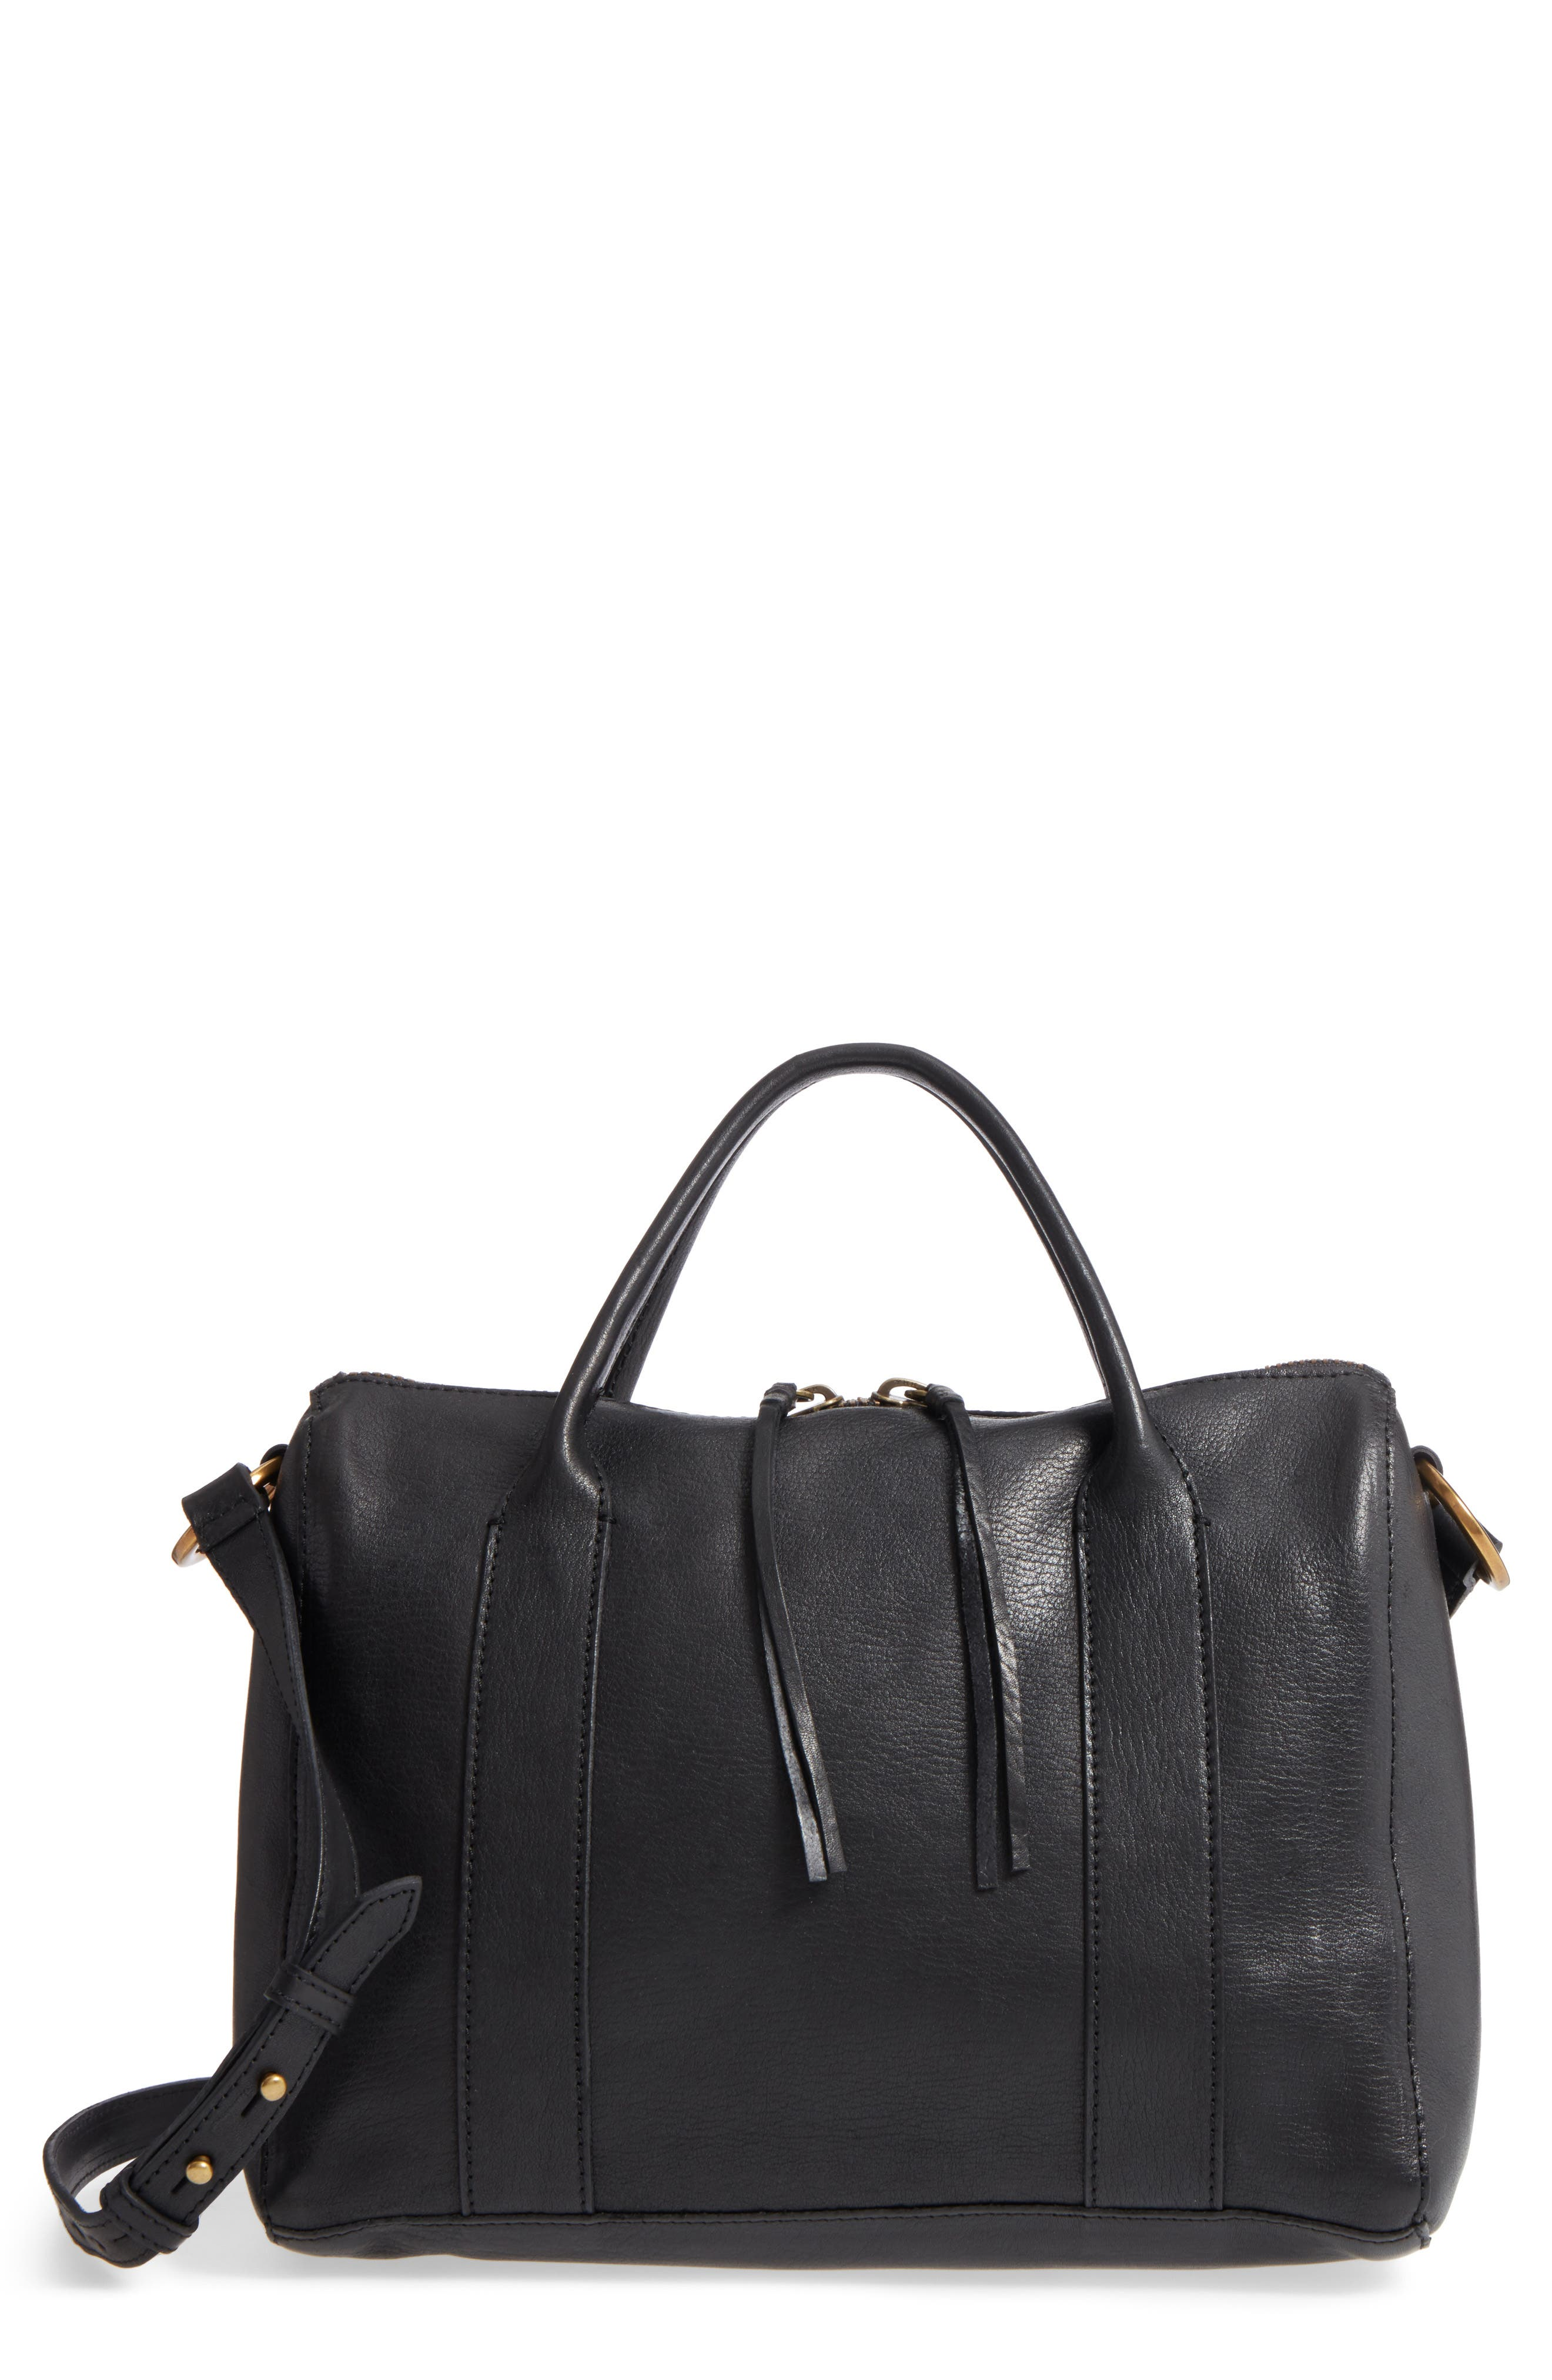 O-Ring Leather Satchel,                             Main thumbnail 1, color,                             001